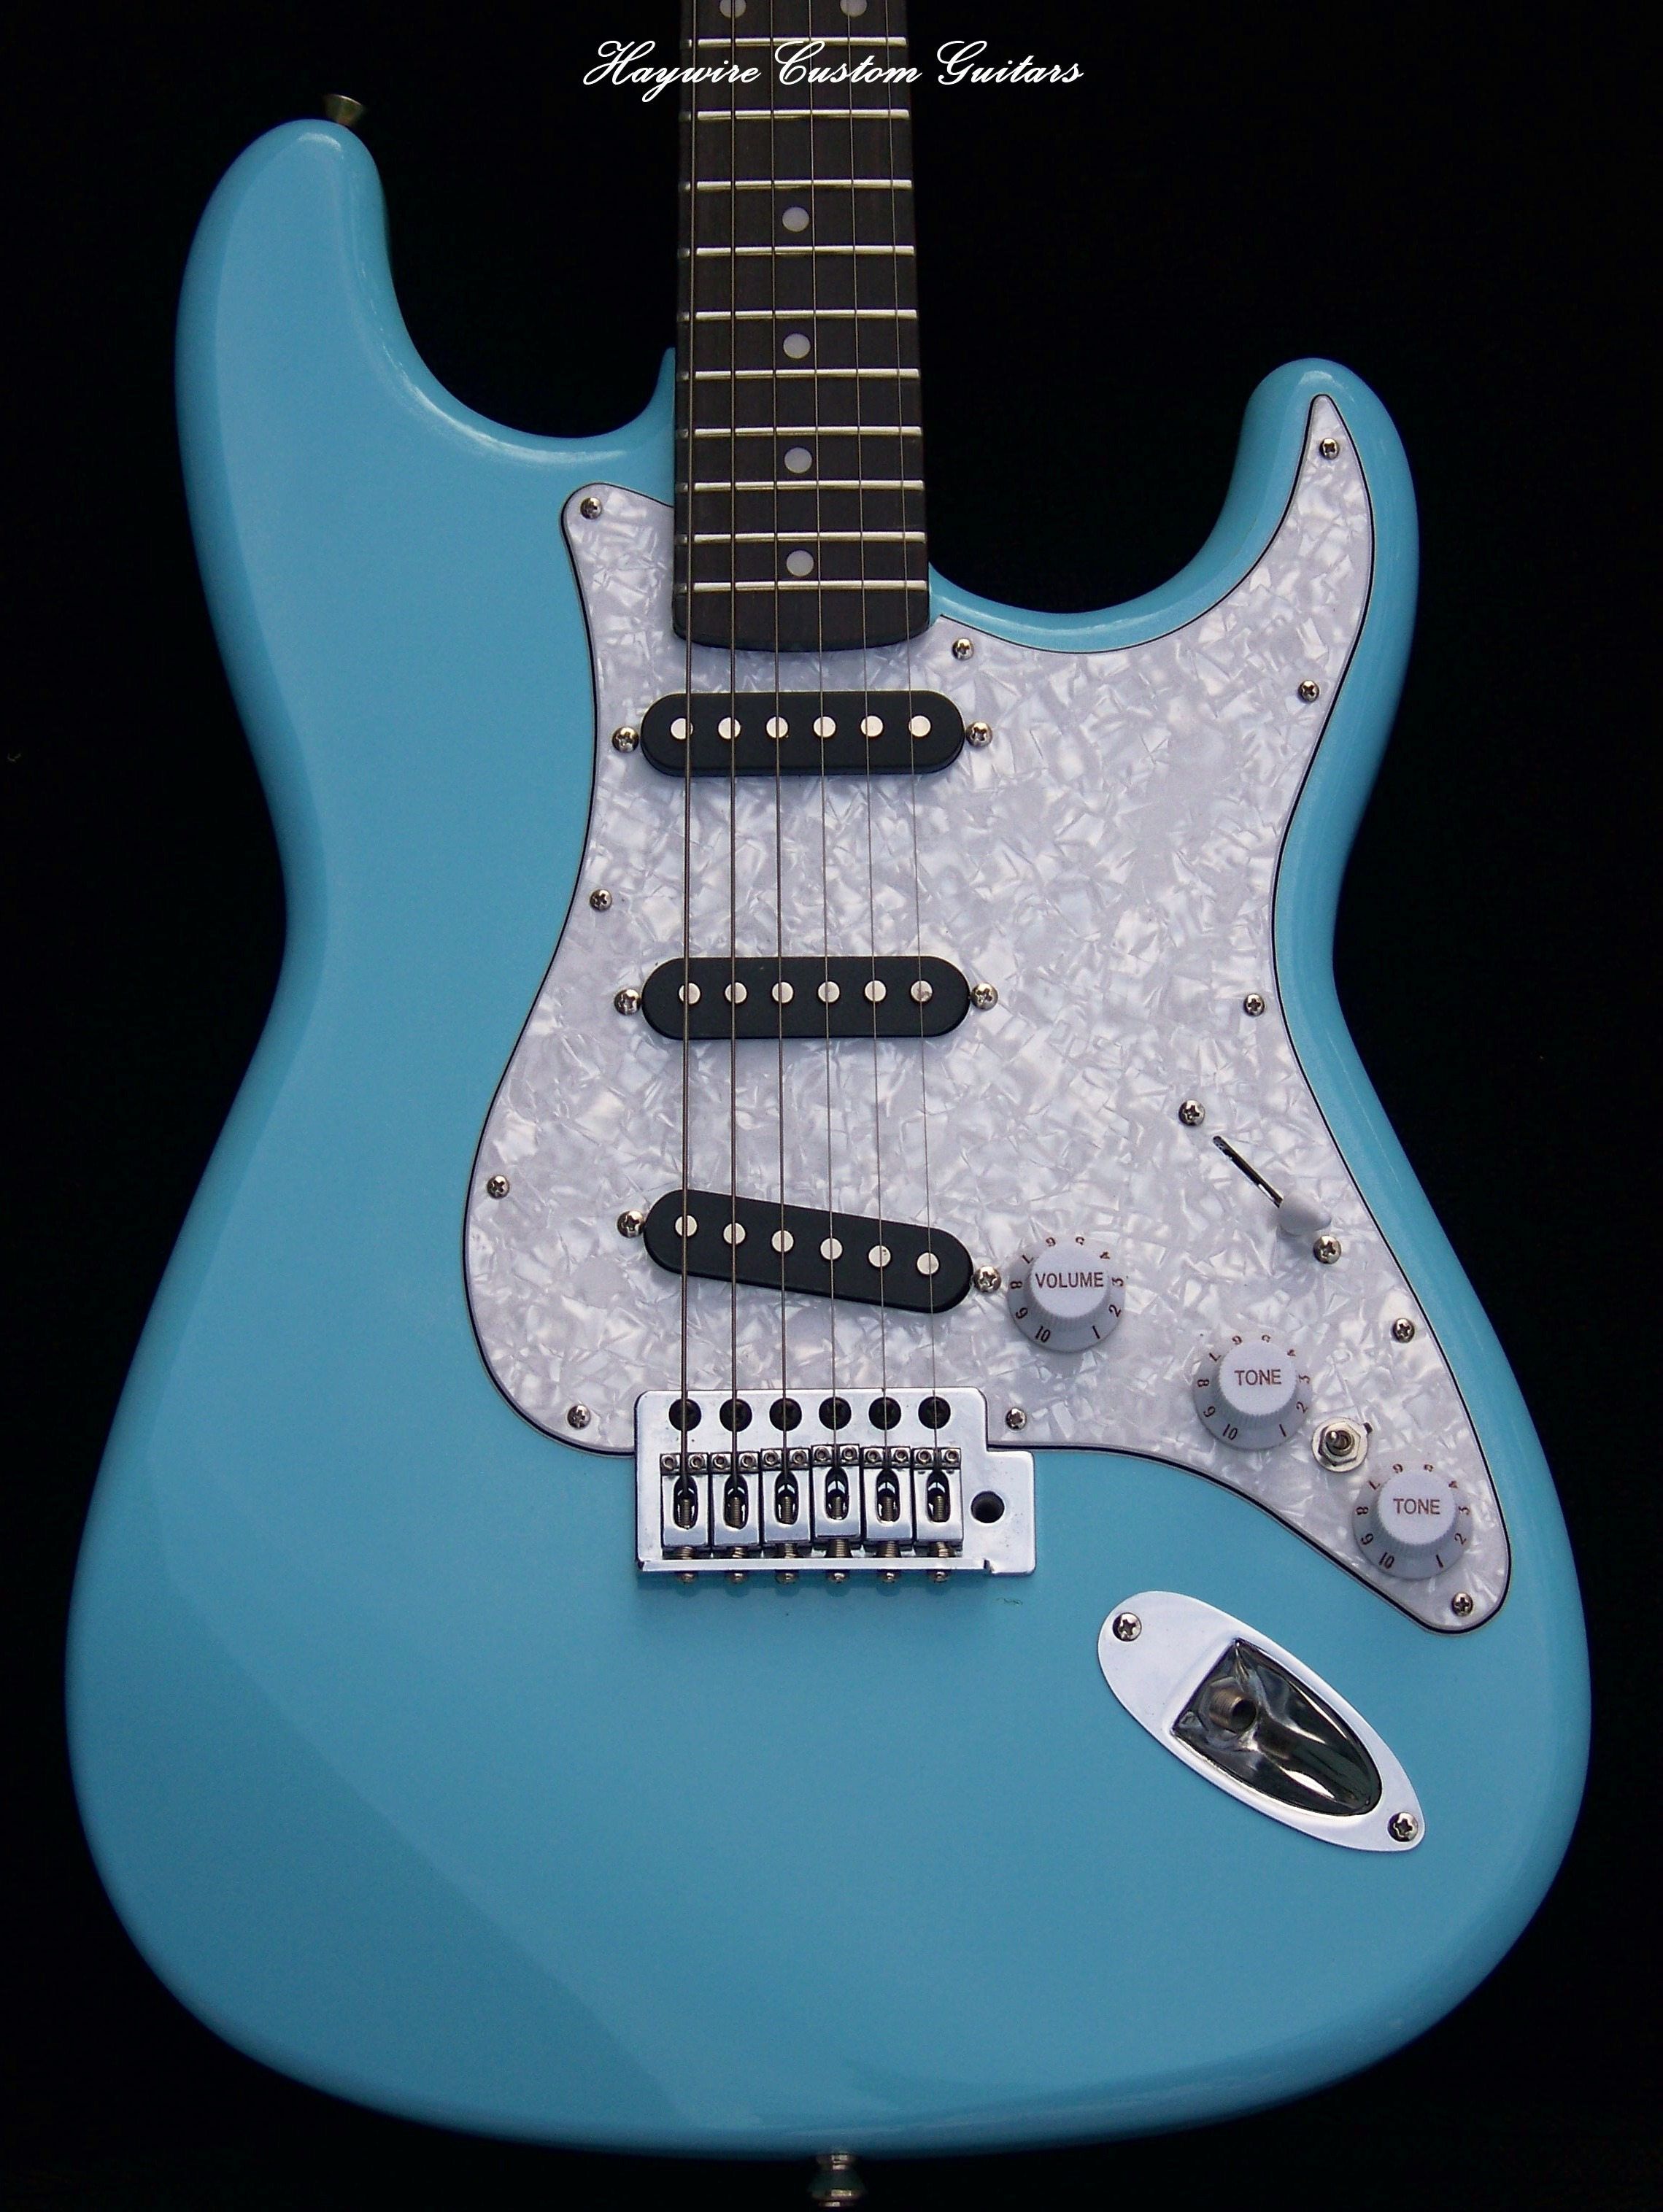 image Haywire Custom Guitars-Sky Blue Strat11